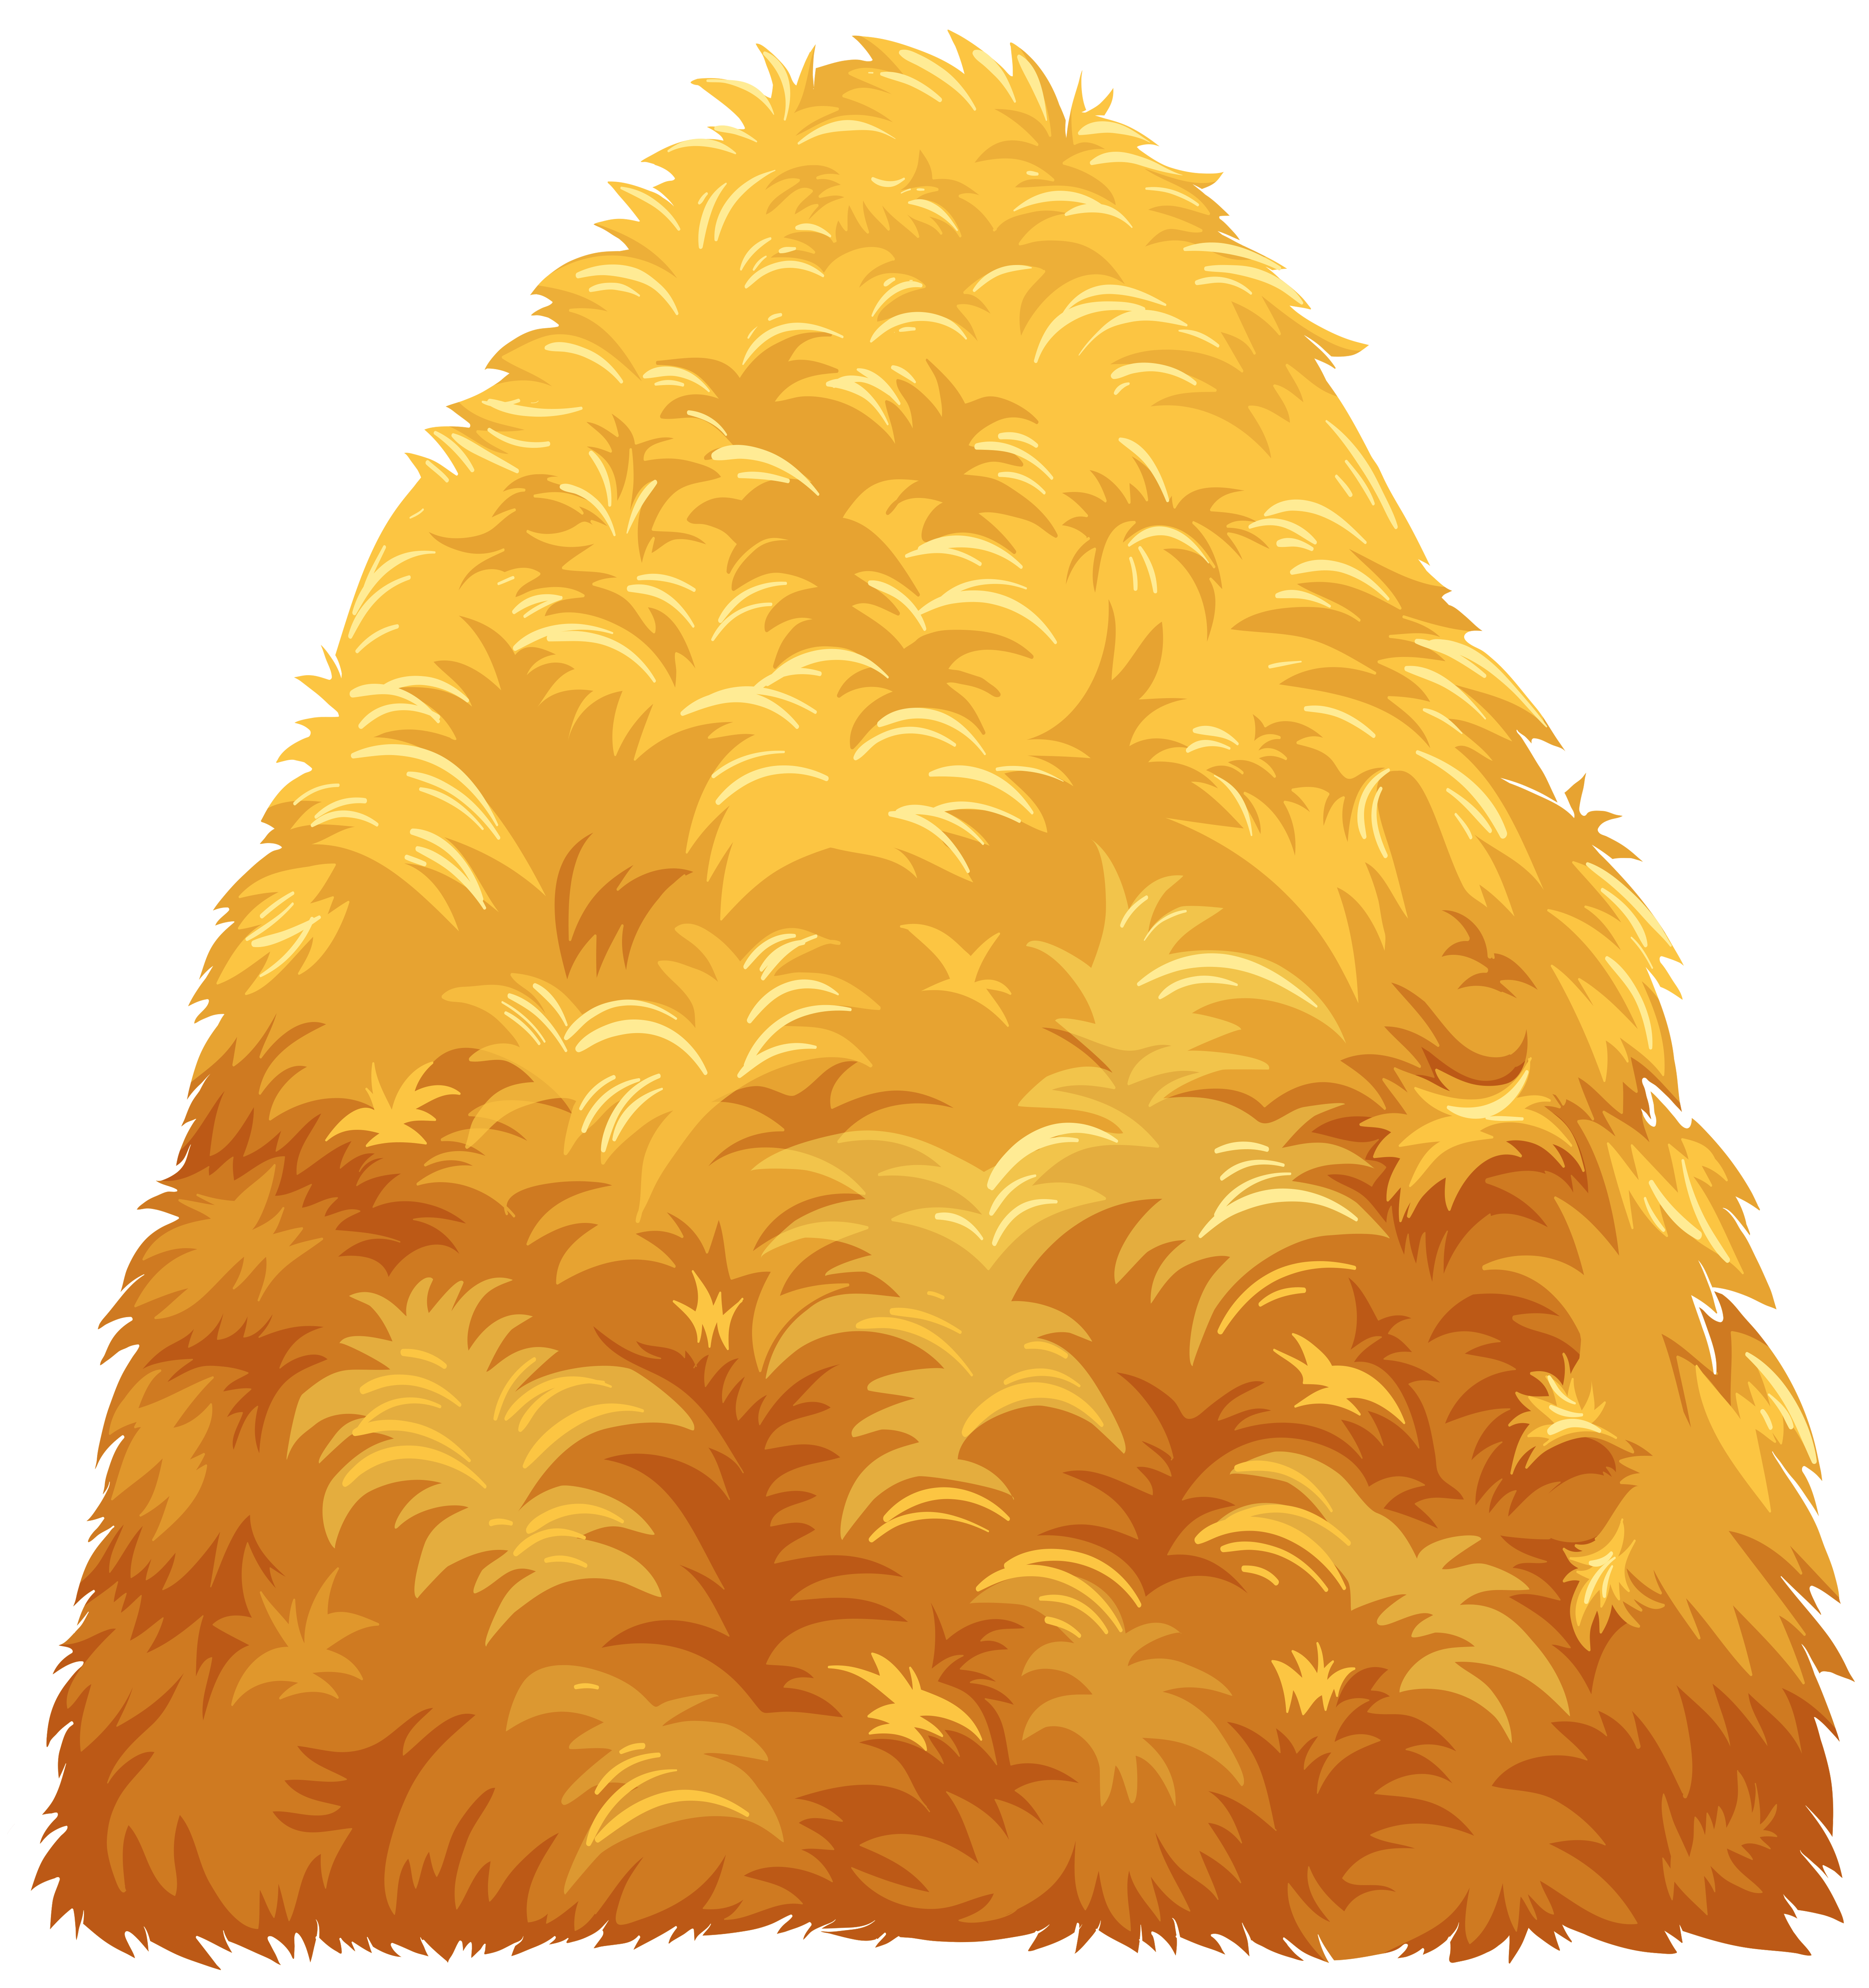 Haystack clipart #1, Download drawings